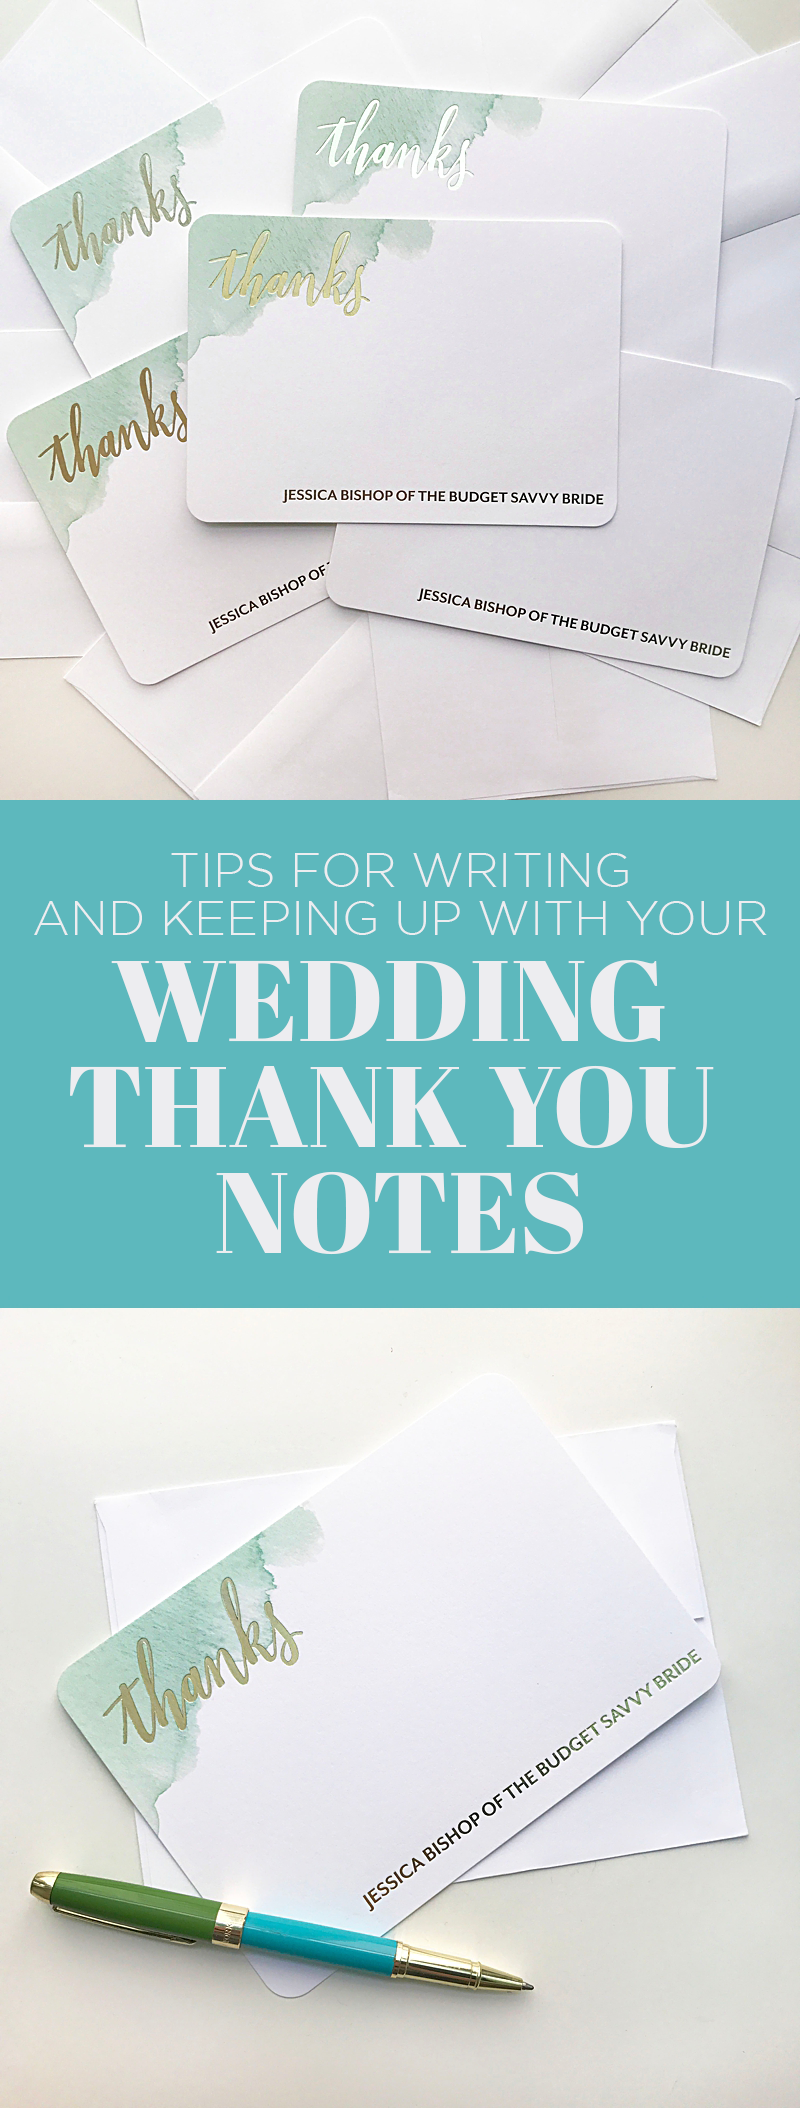 Check out these wedding thank you note tips and personalized stationery by Wedding Paper Divas! Learn how to keep up with and write your thank you's!